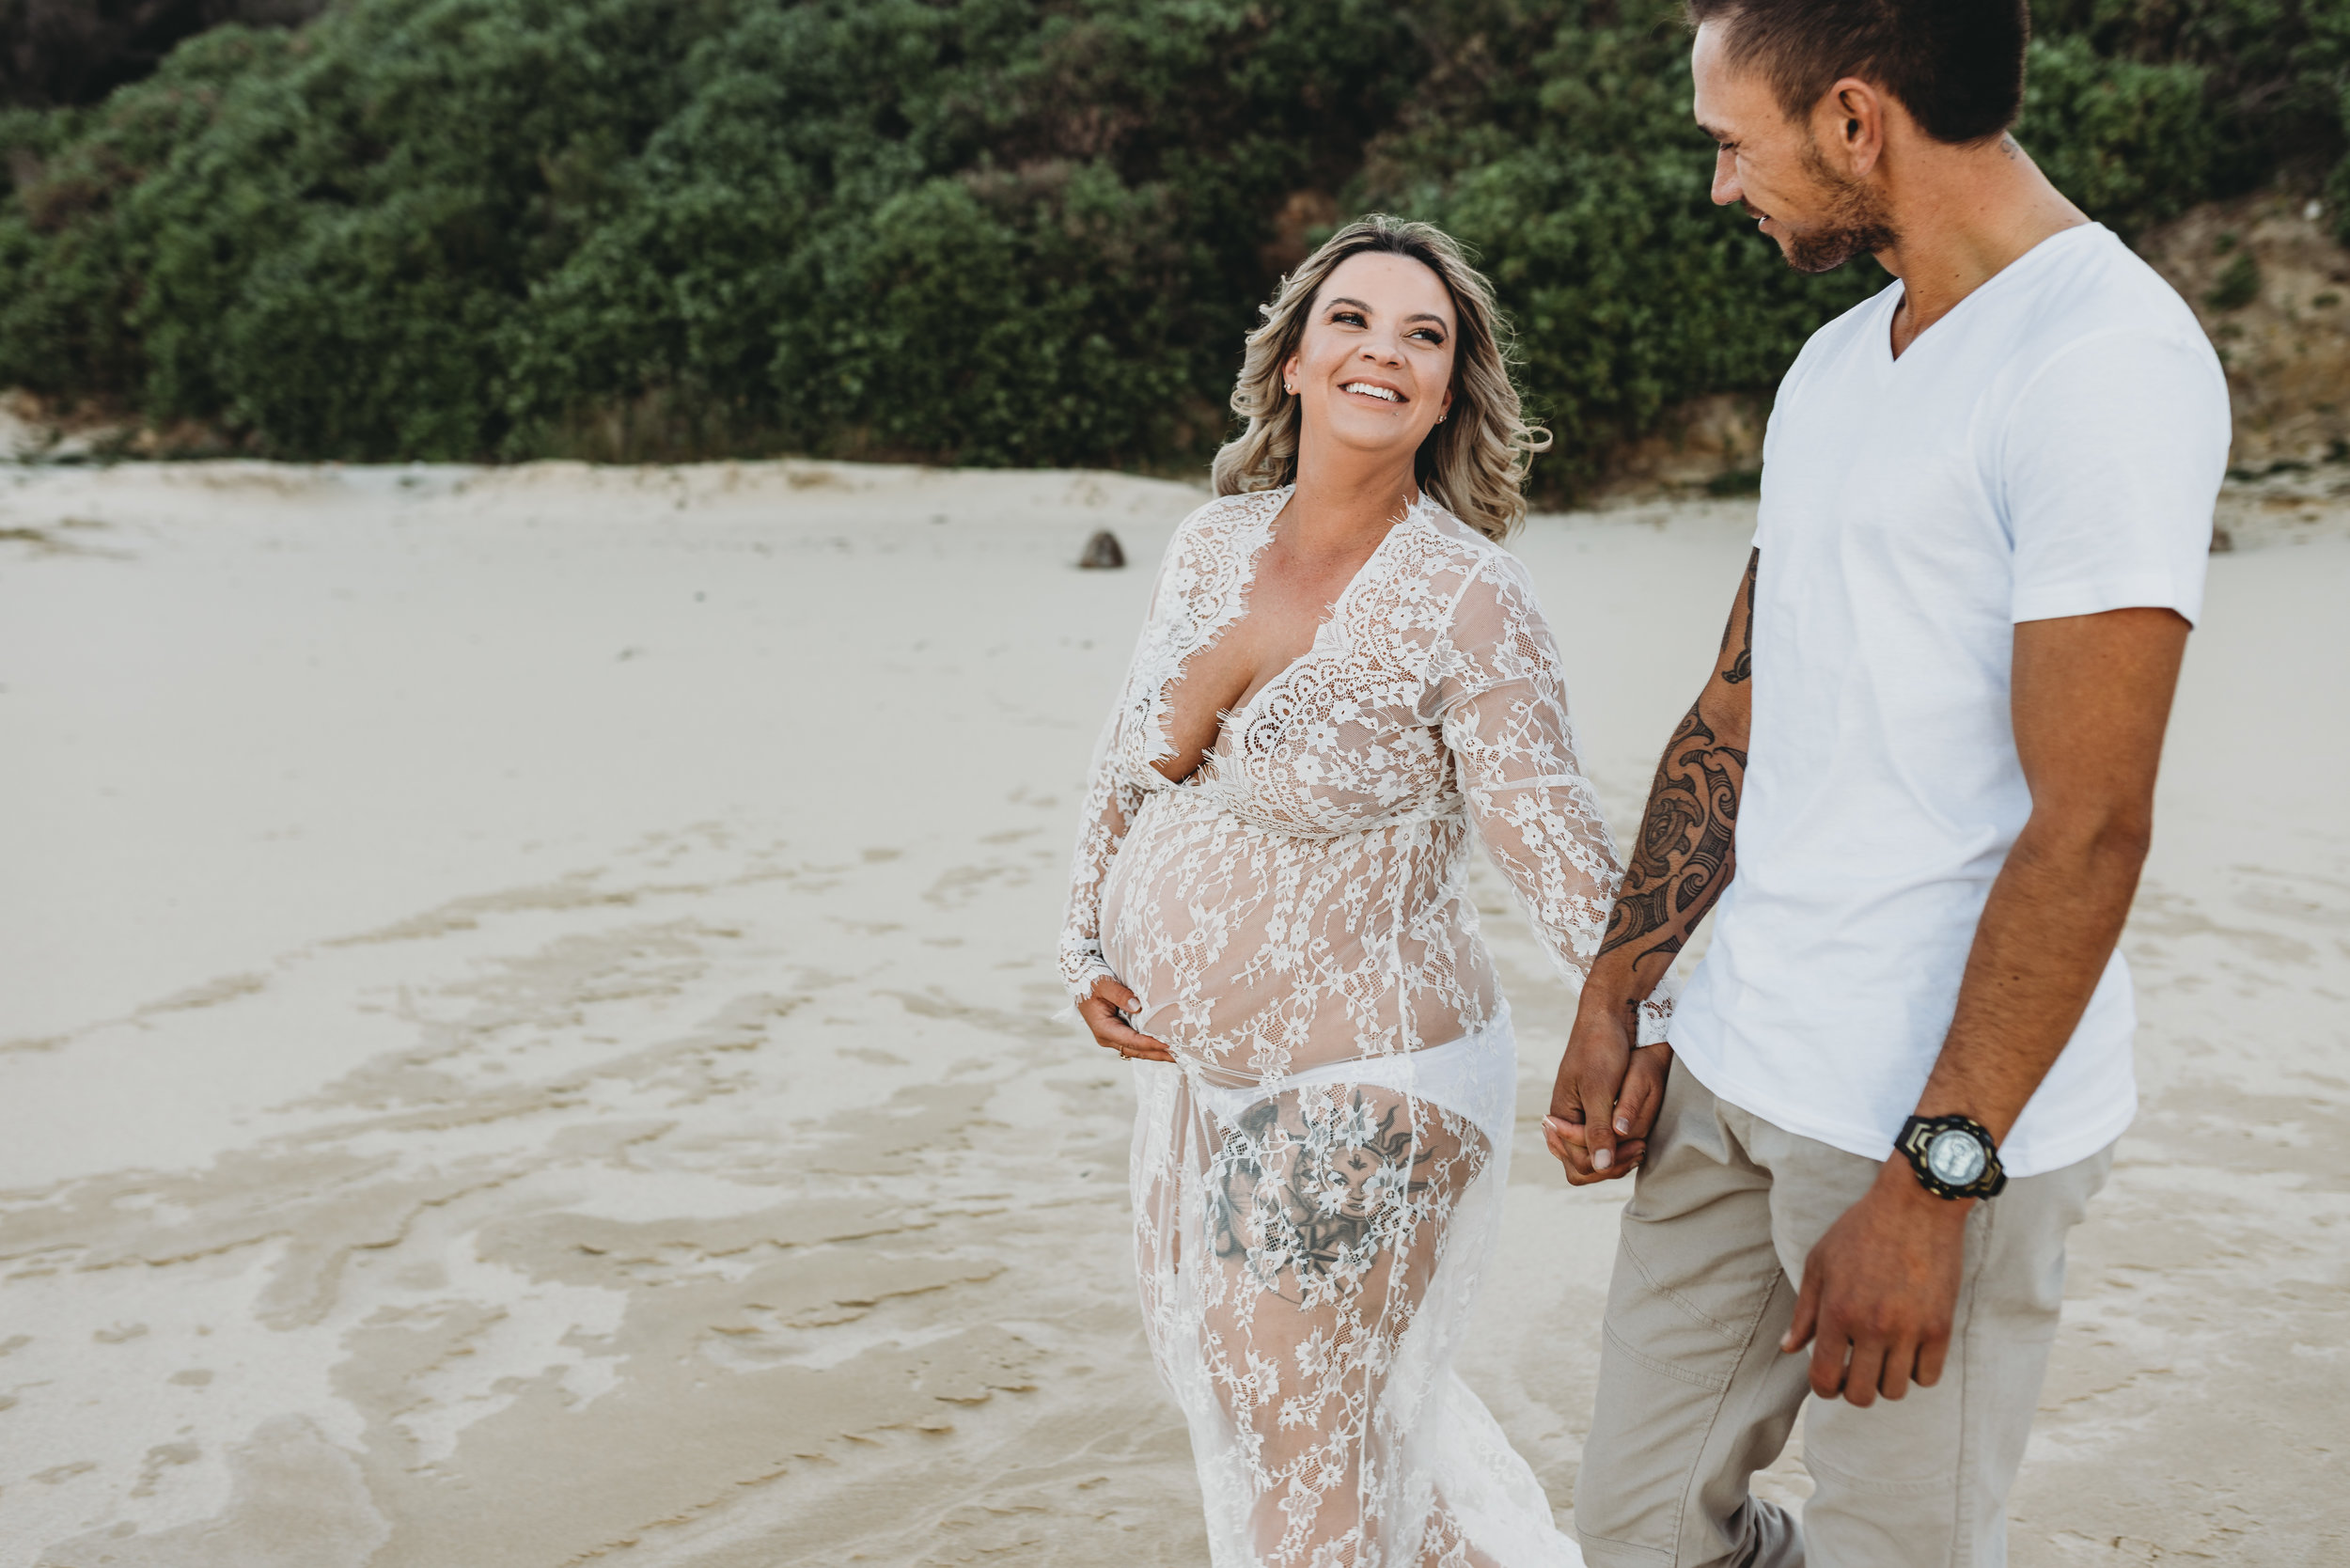 McKaley & Reagan - Wollongong Sunset Beach Maternity Session    9th August 2019